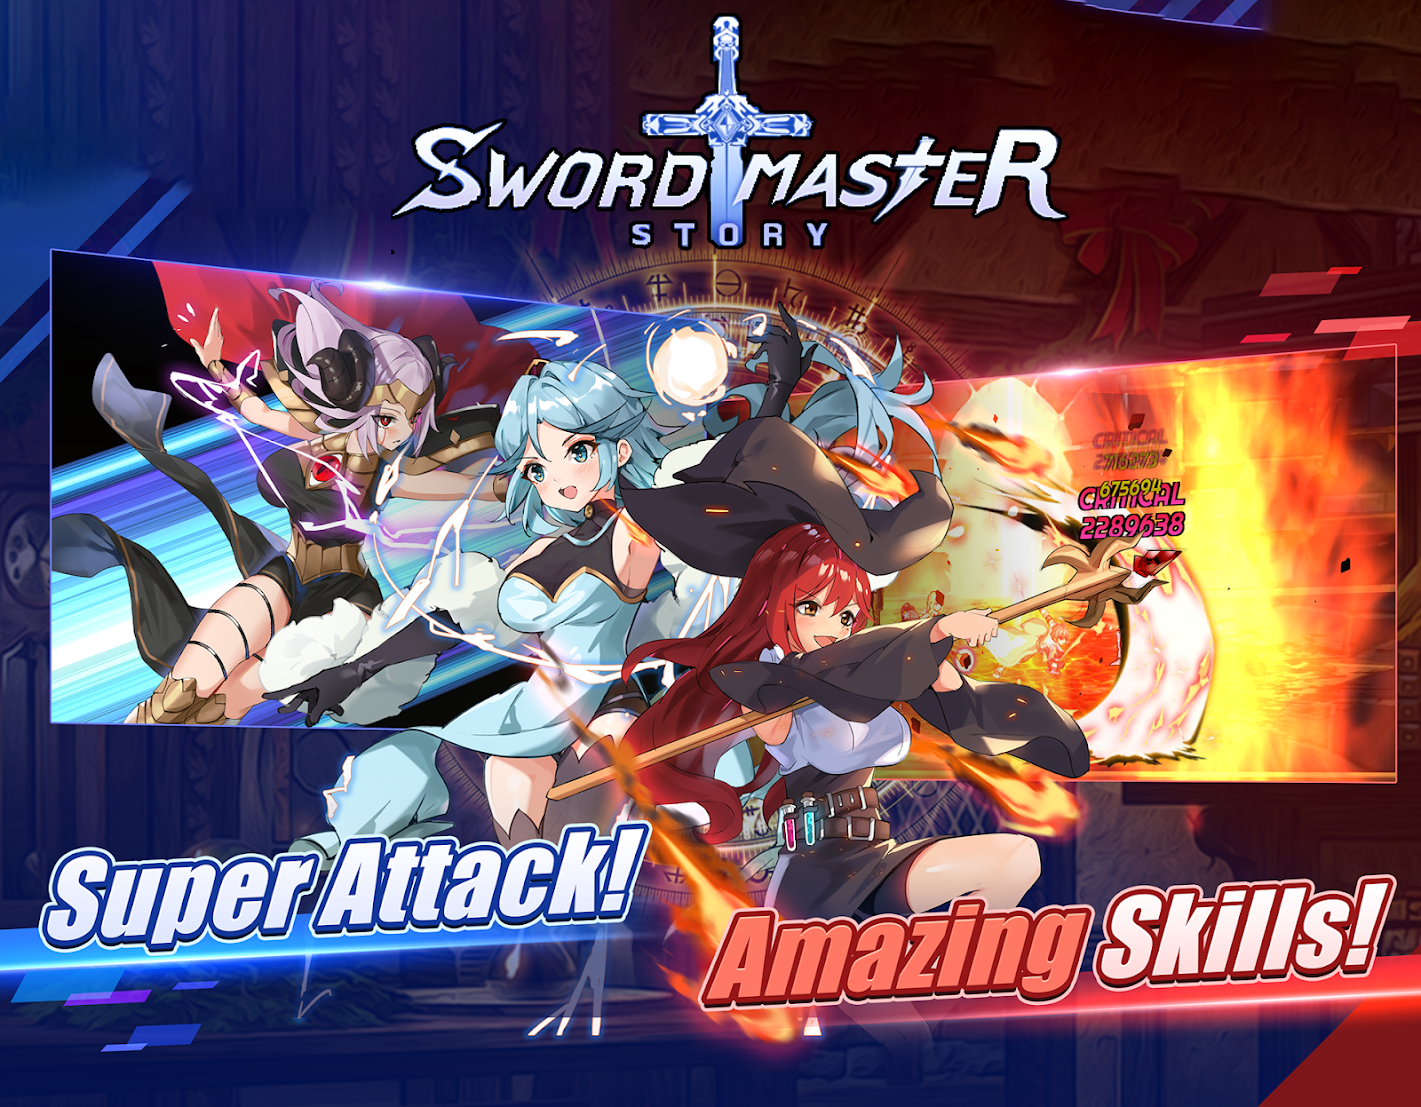 Super Planet's Sword Master Story Game in Pre-Registration. Here's all We Know